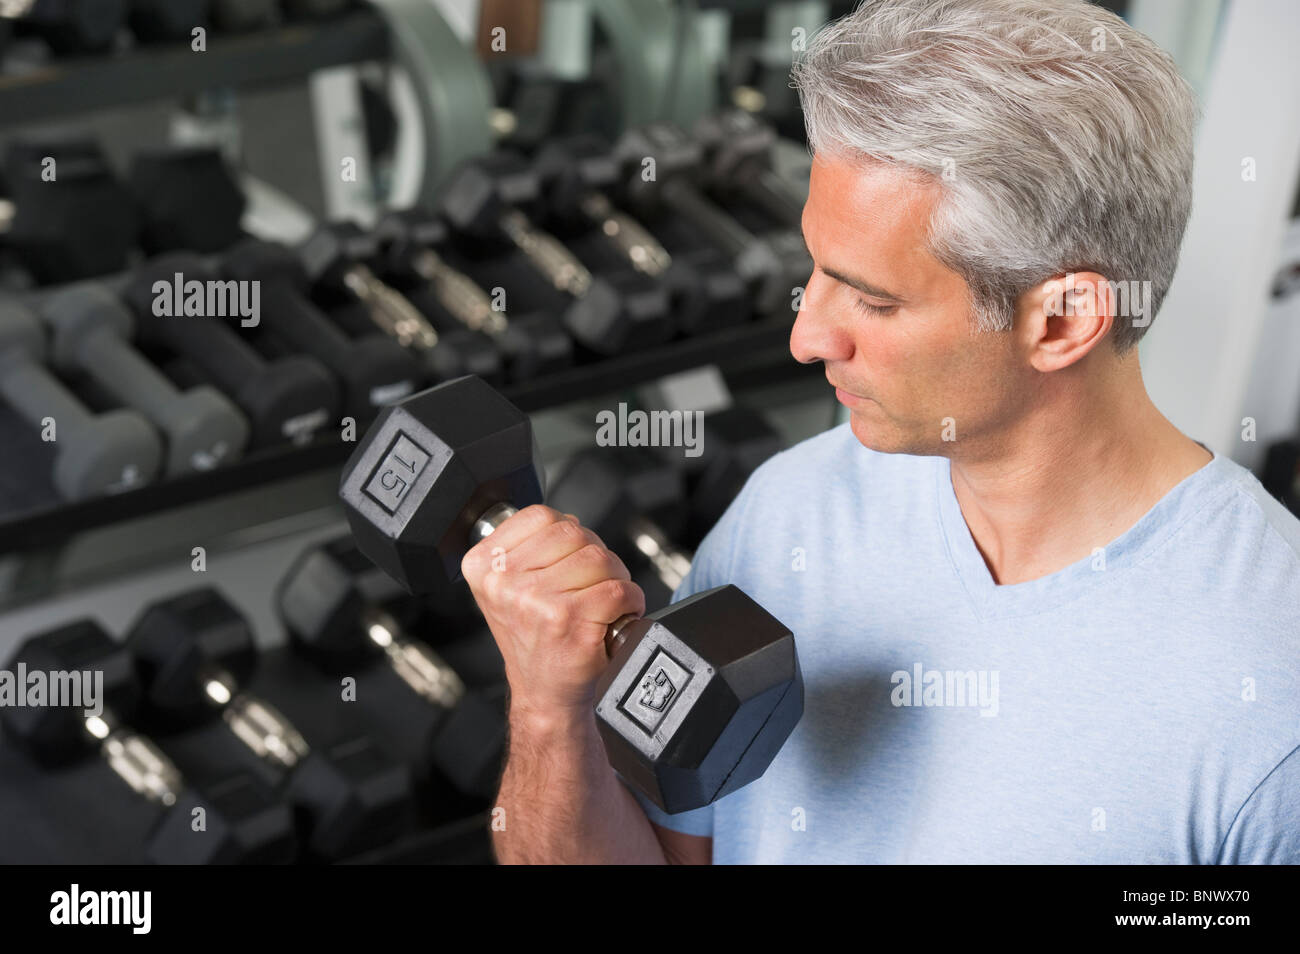 Man lifting free weights at the gym - Stock Image